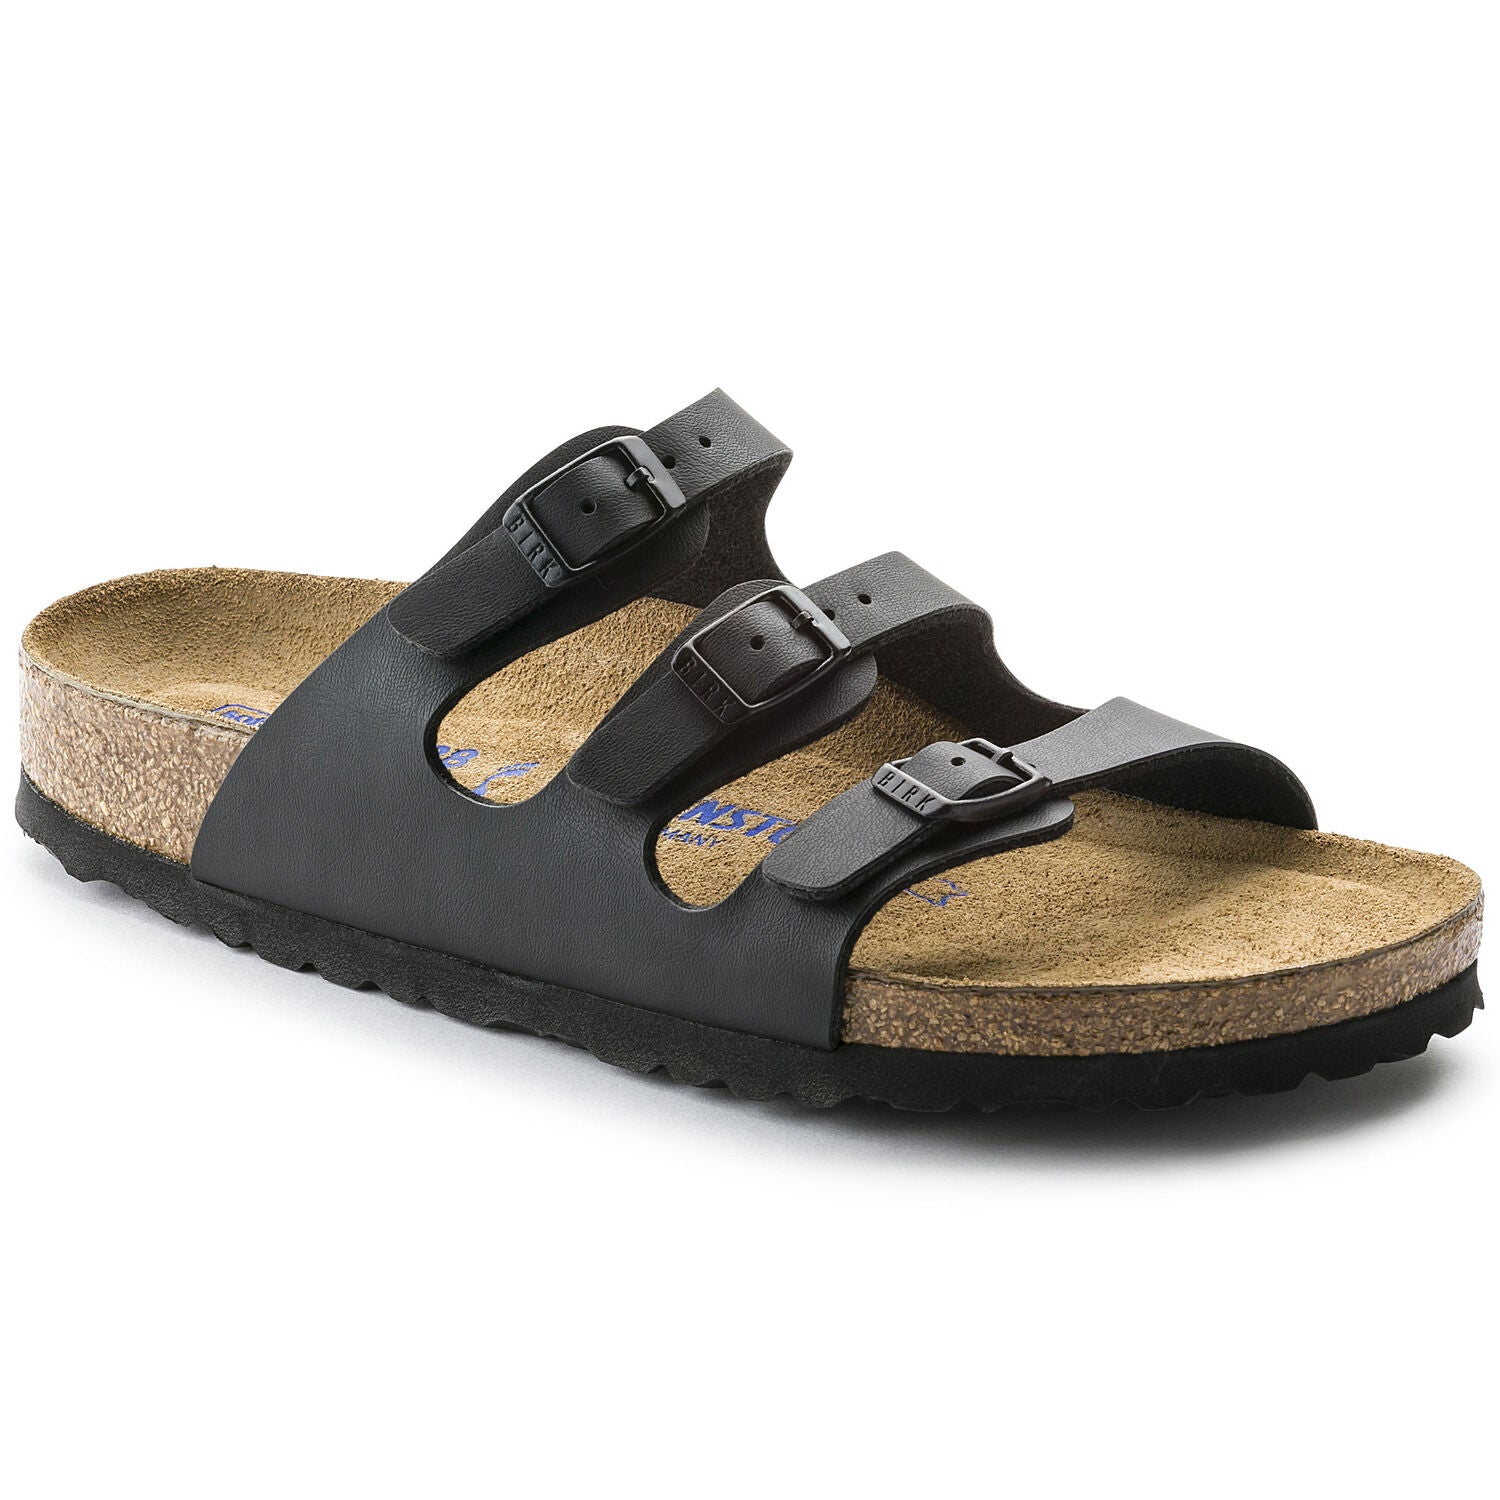 FLORIDA SOFT FOOTBED BIRKO-FLOR - BLACK